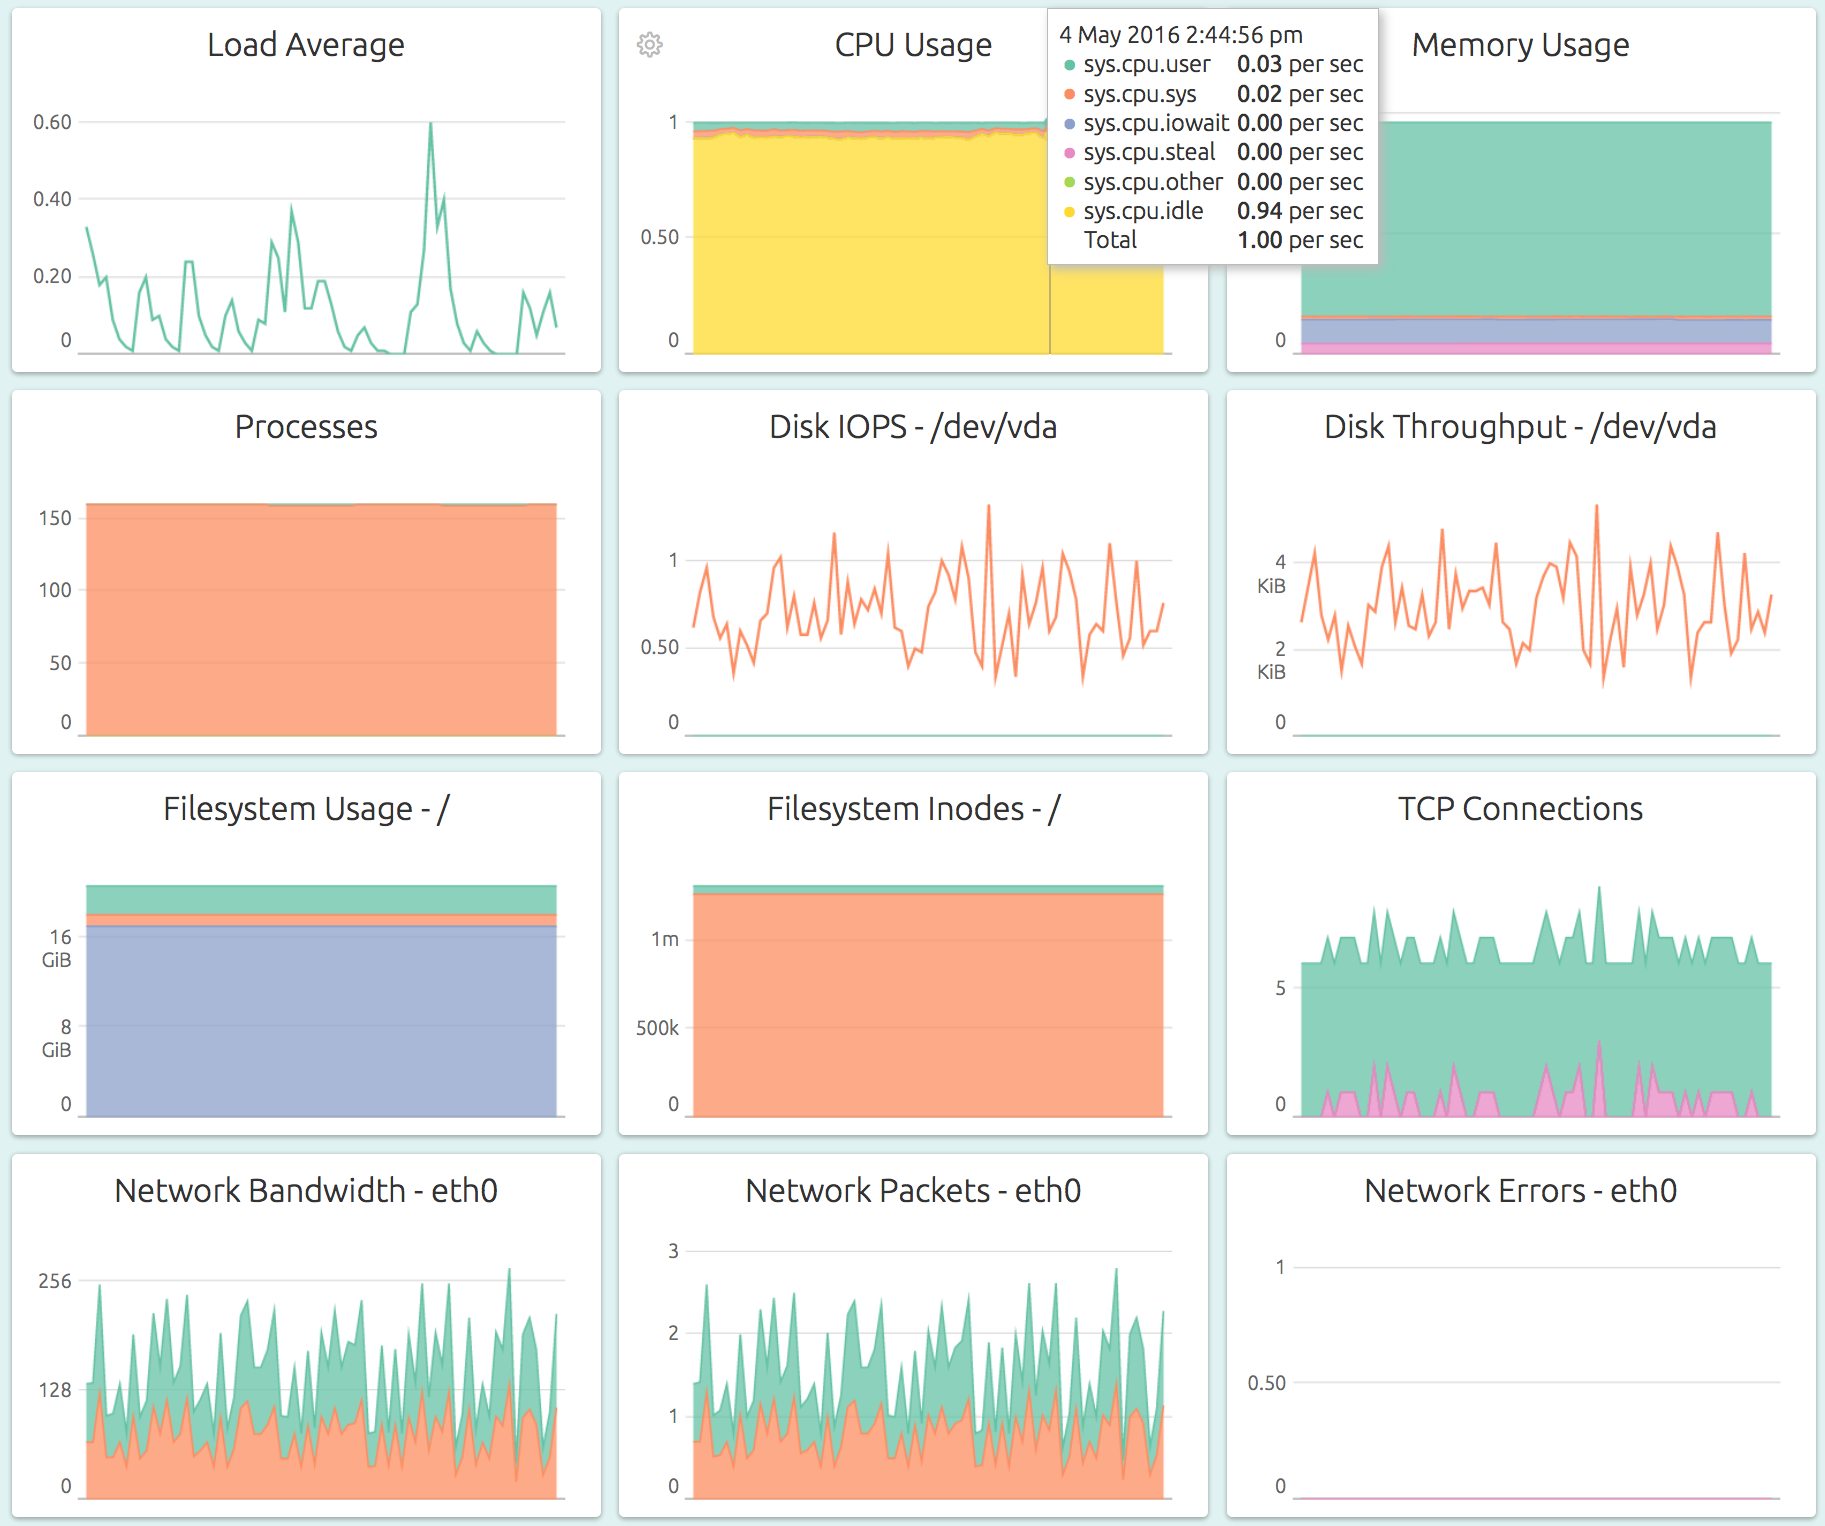 server monitoring dashboard, memory usage, swap usage, IOPS, disk throughput, filesystem usage, load average, cpu usage, processes, interface bandwidth, interface packets, interface errors